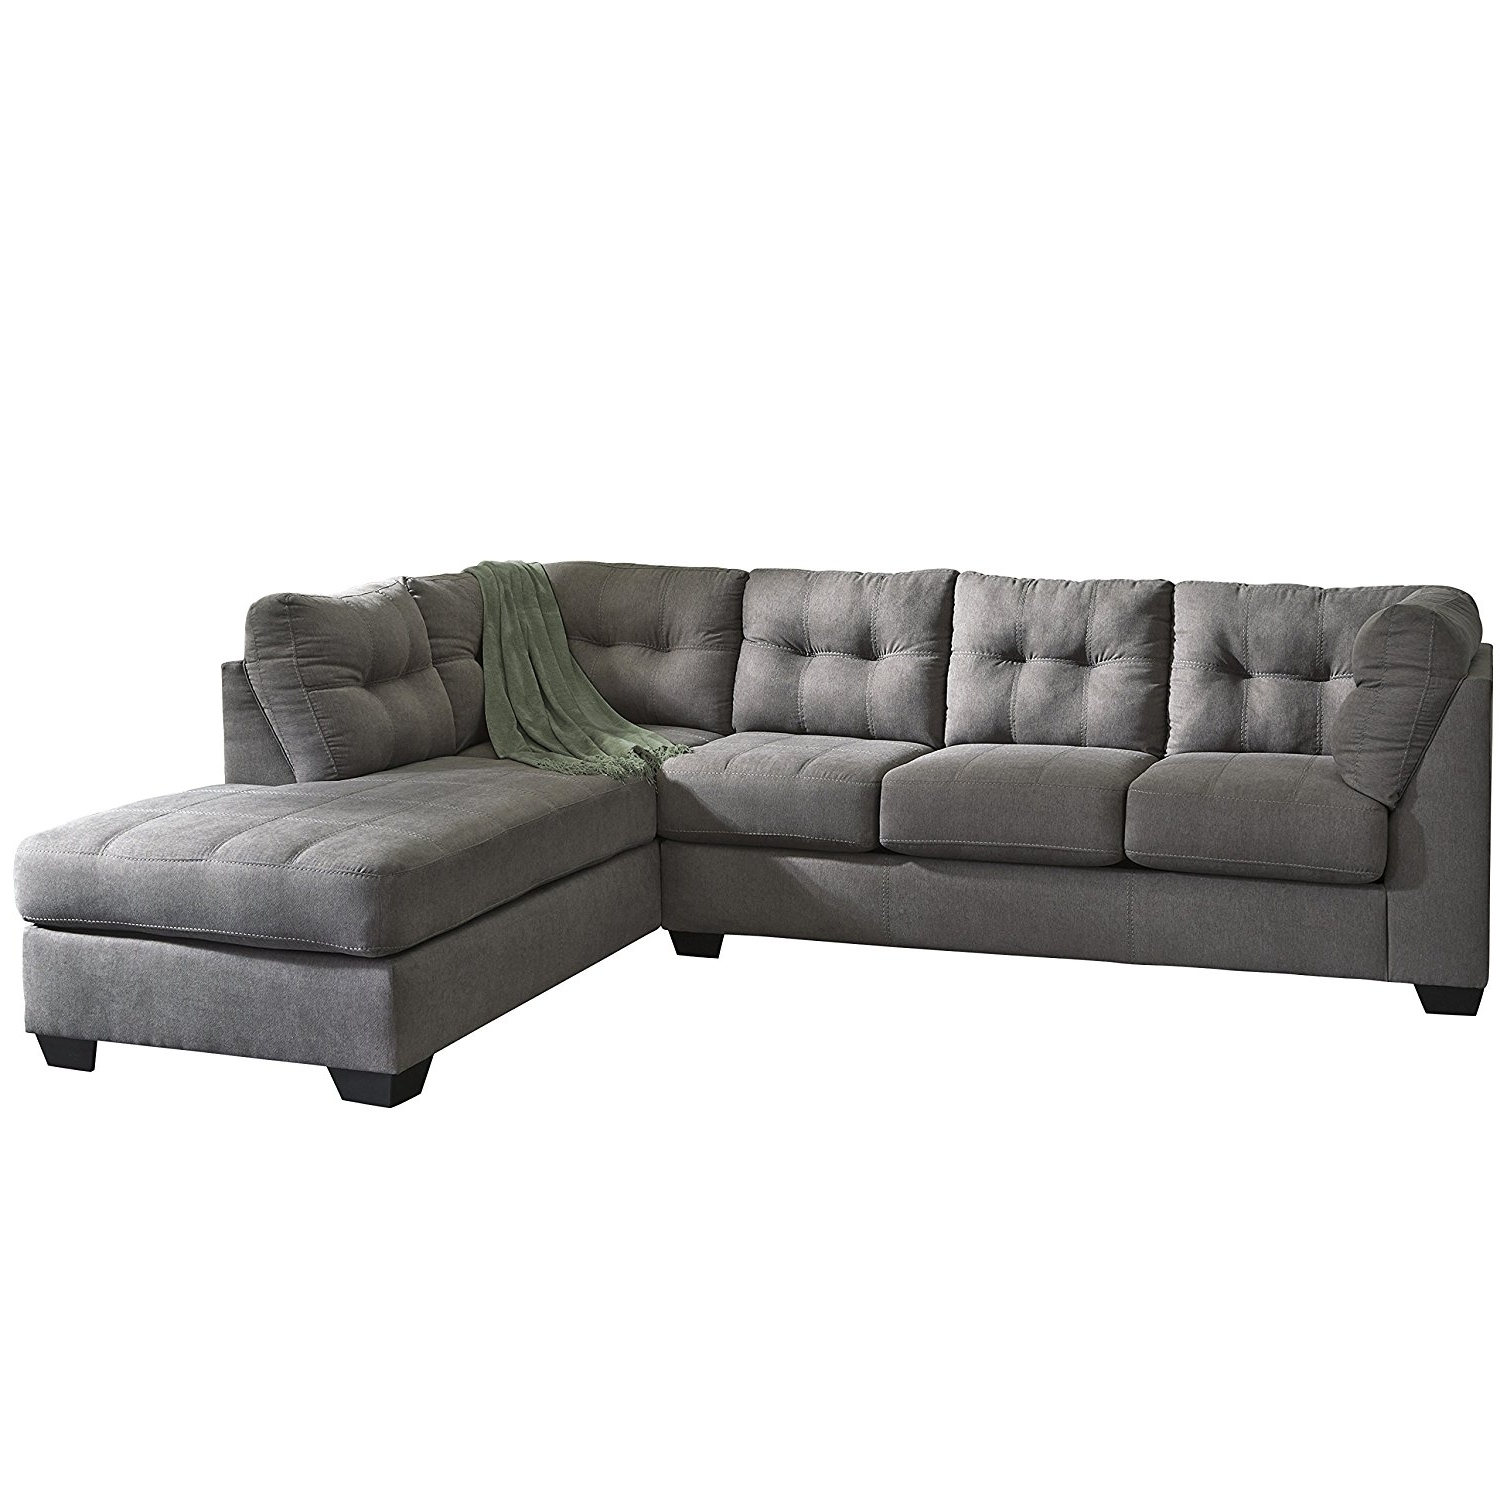 Amazon: Flash Furniture Benchcraft Maier Sectional With Right Pertaining To Recent Right Facing Chaise Sectionals (View 13 of 15)